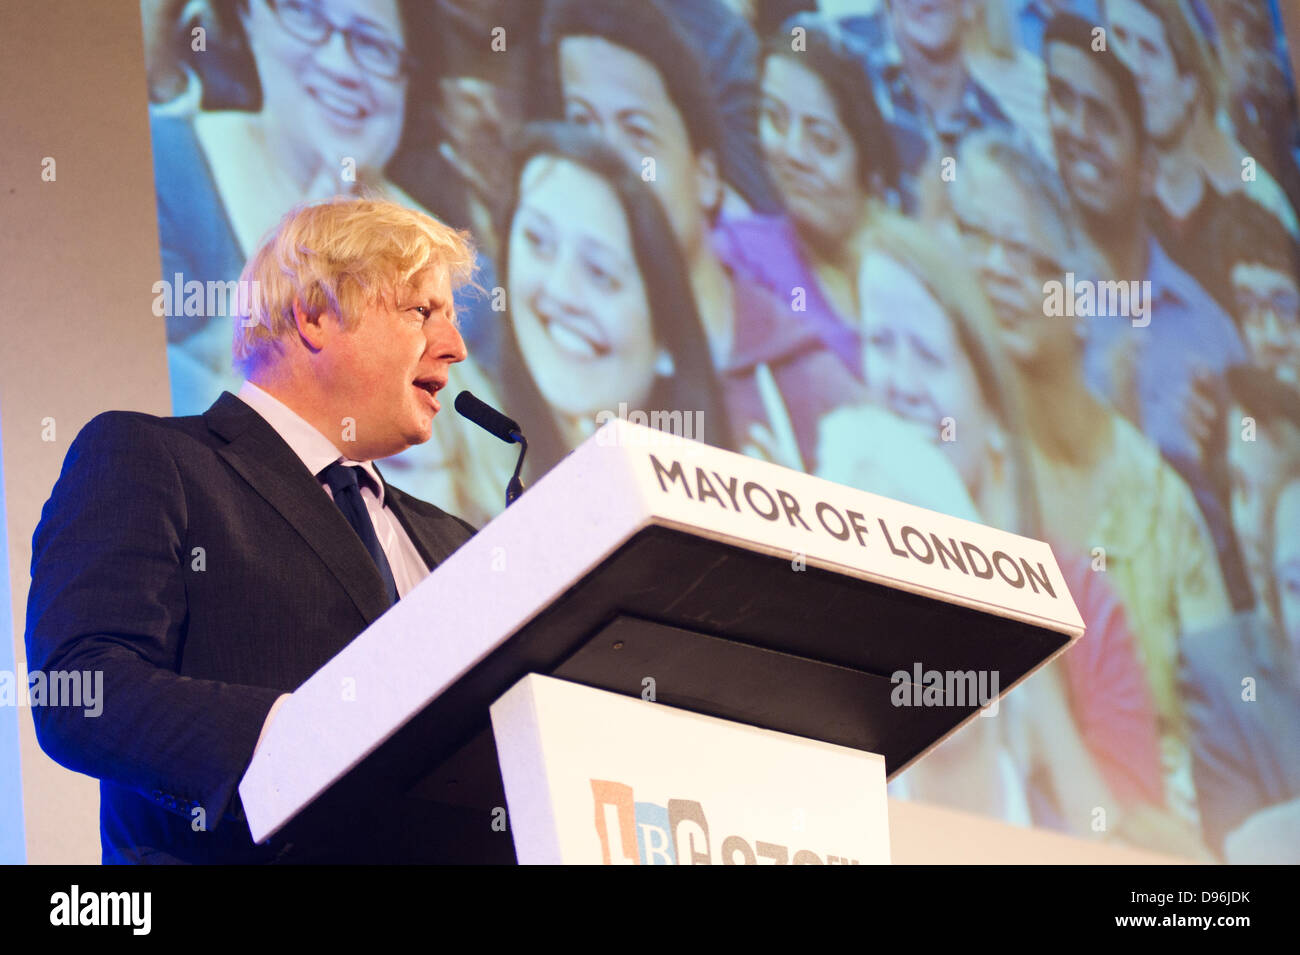 London, UK. 12th June 2013. The Mayor of London Boris Johnson answers questions of Londoners about the capital at Stock Photo